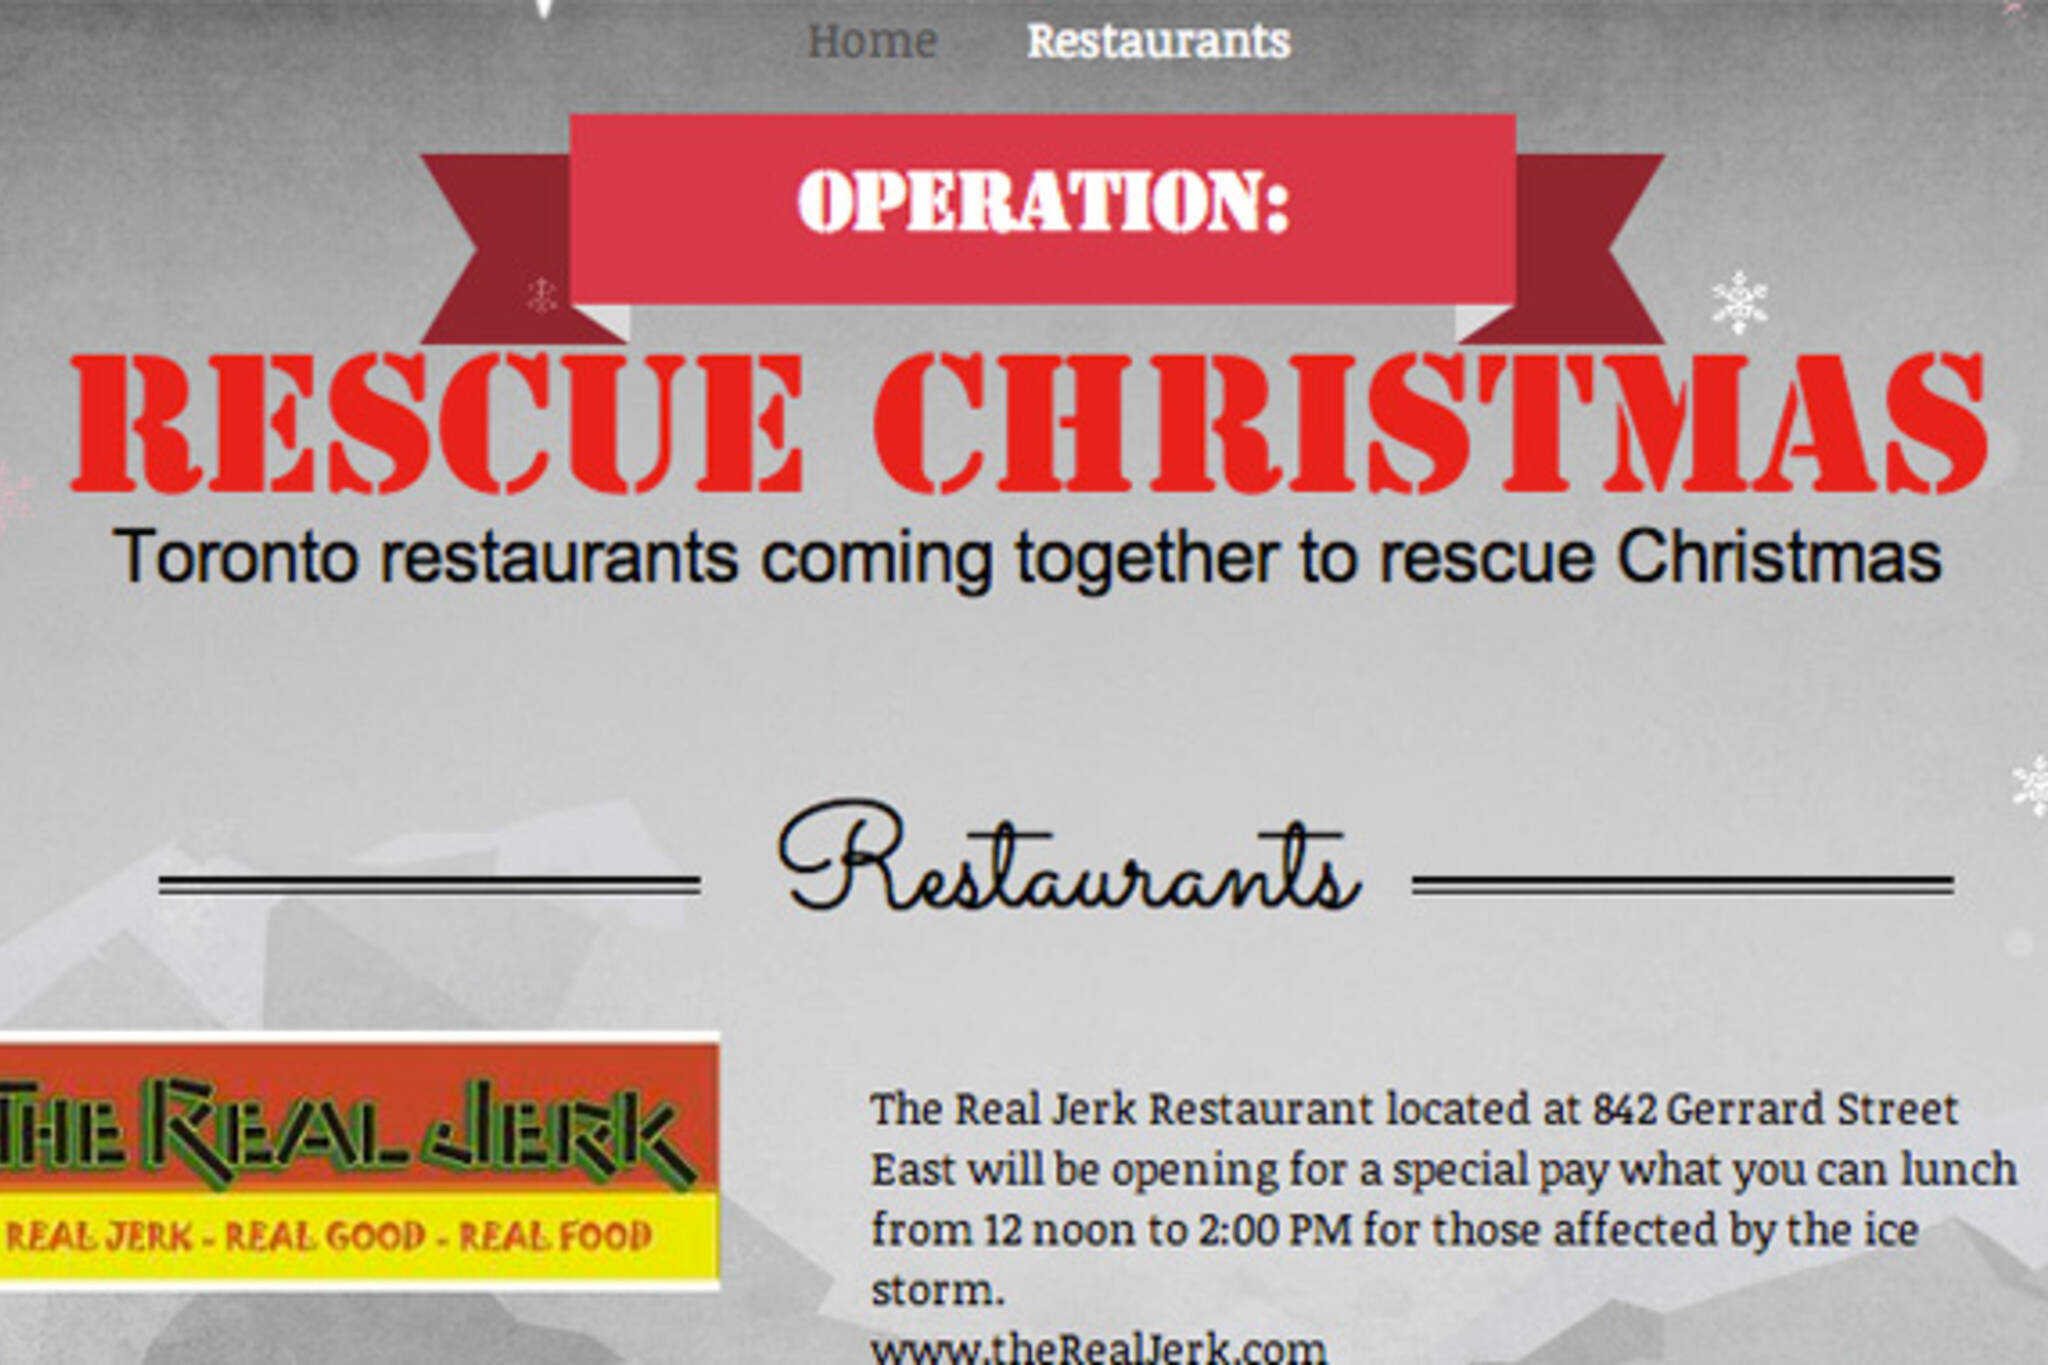 Restaurant rescue Christmas